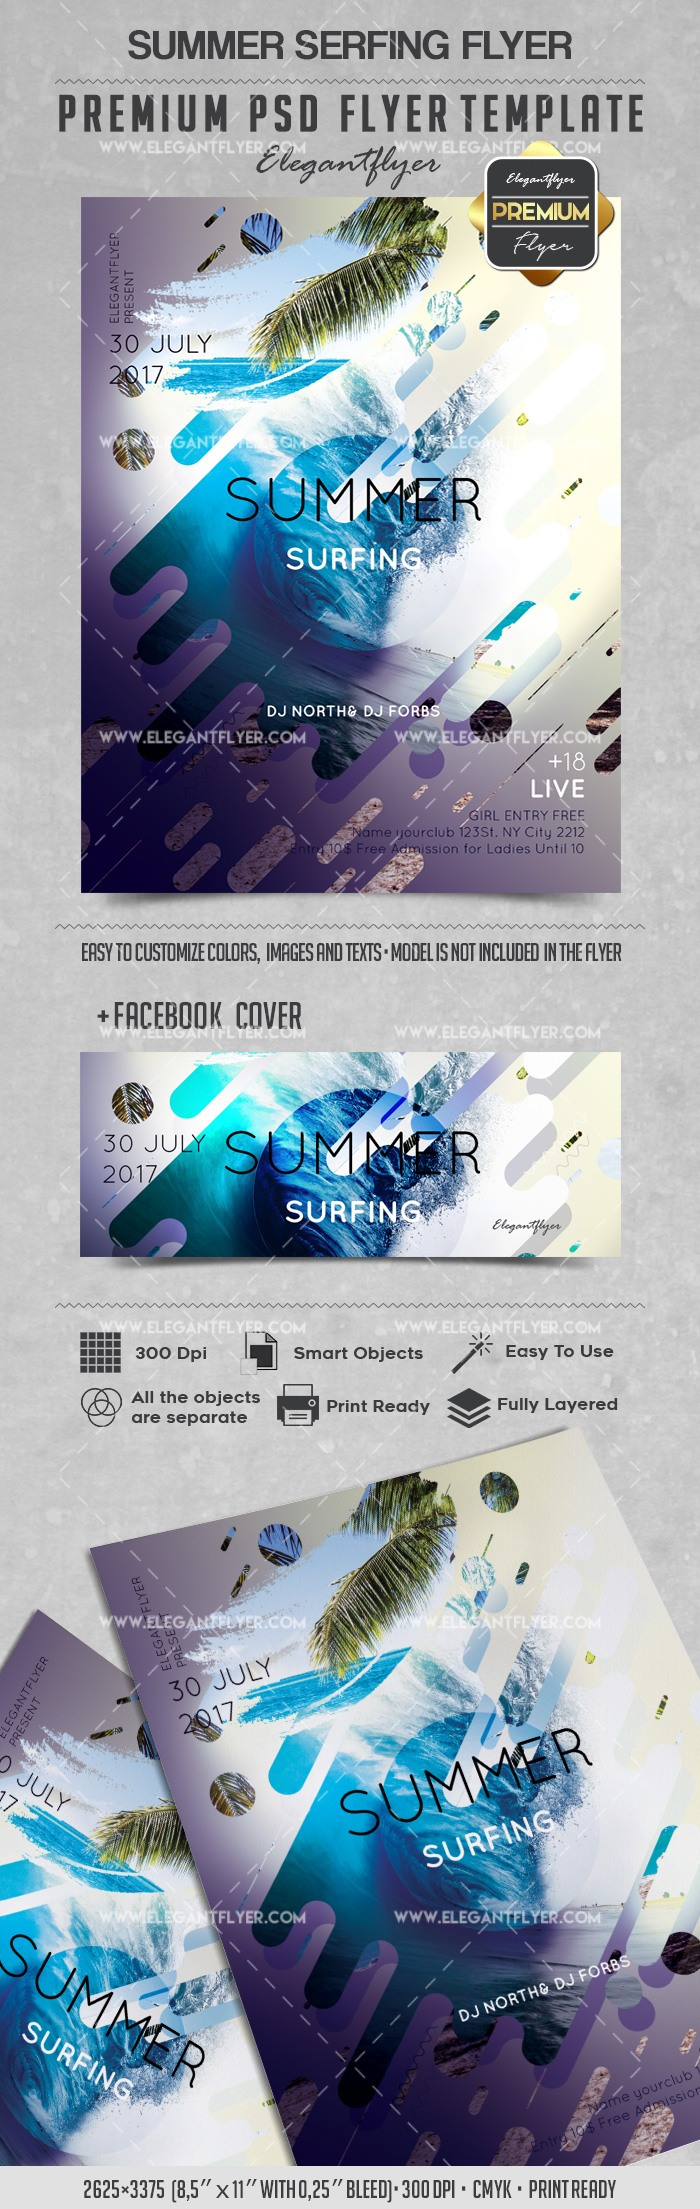 Hot Summer Surfing PSD Poster